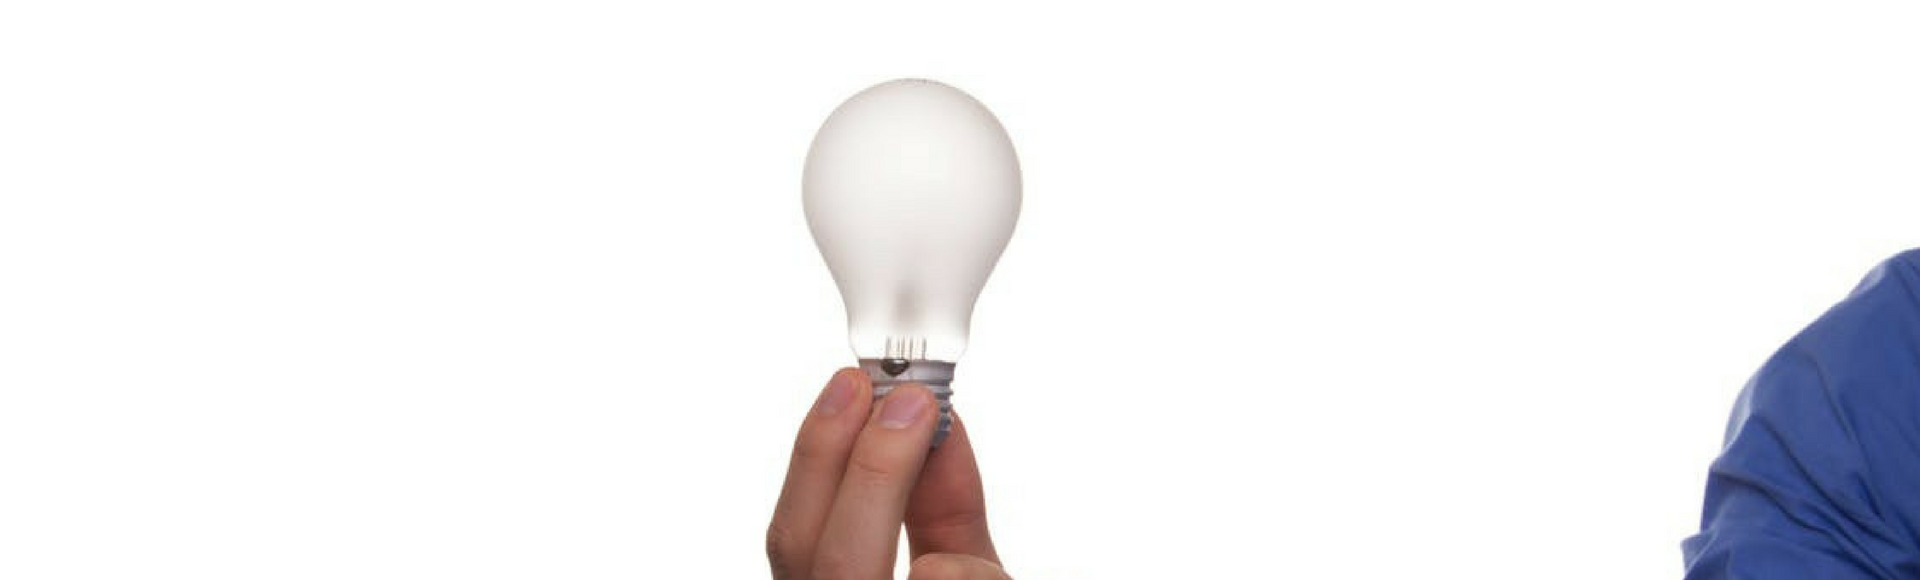 Lightbulb signifies finally being able to look up timesheets from employees' profile.